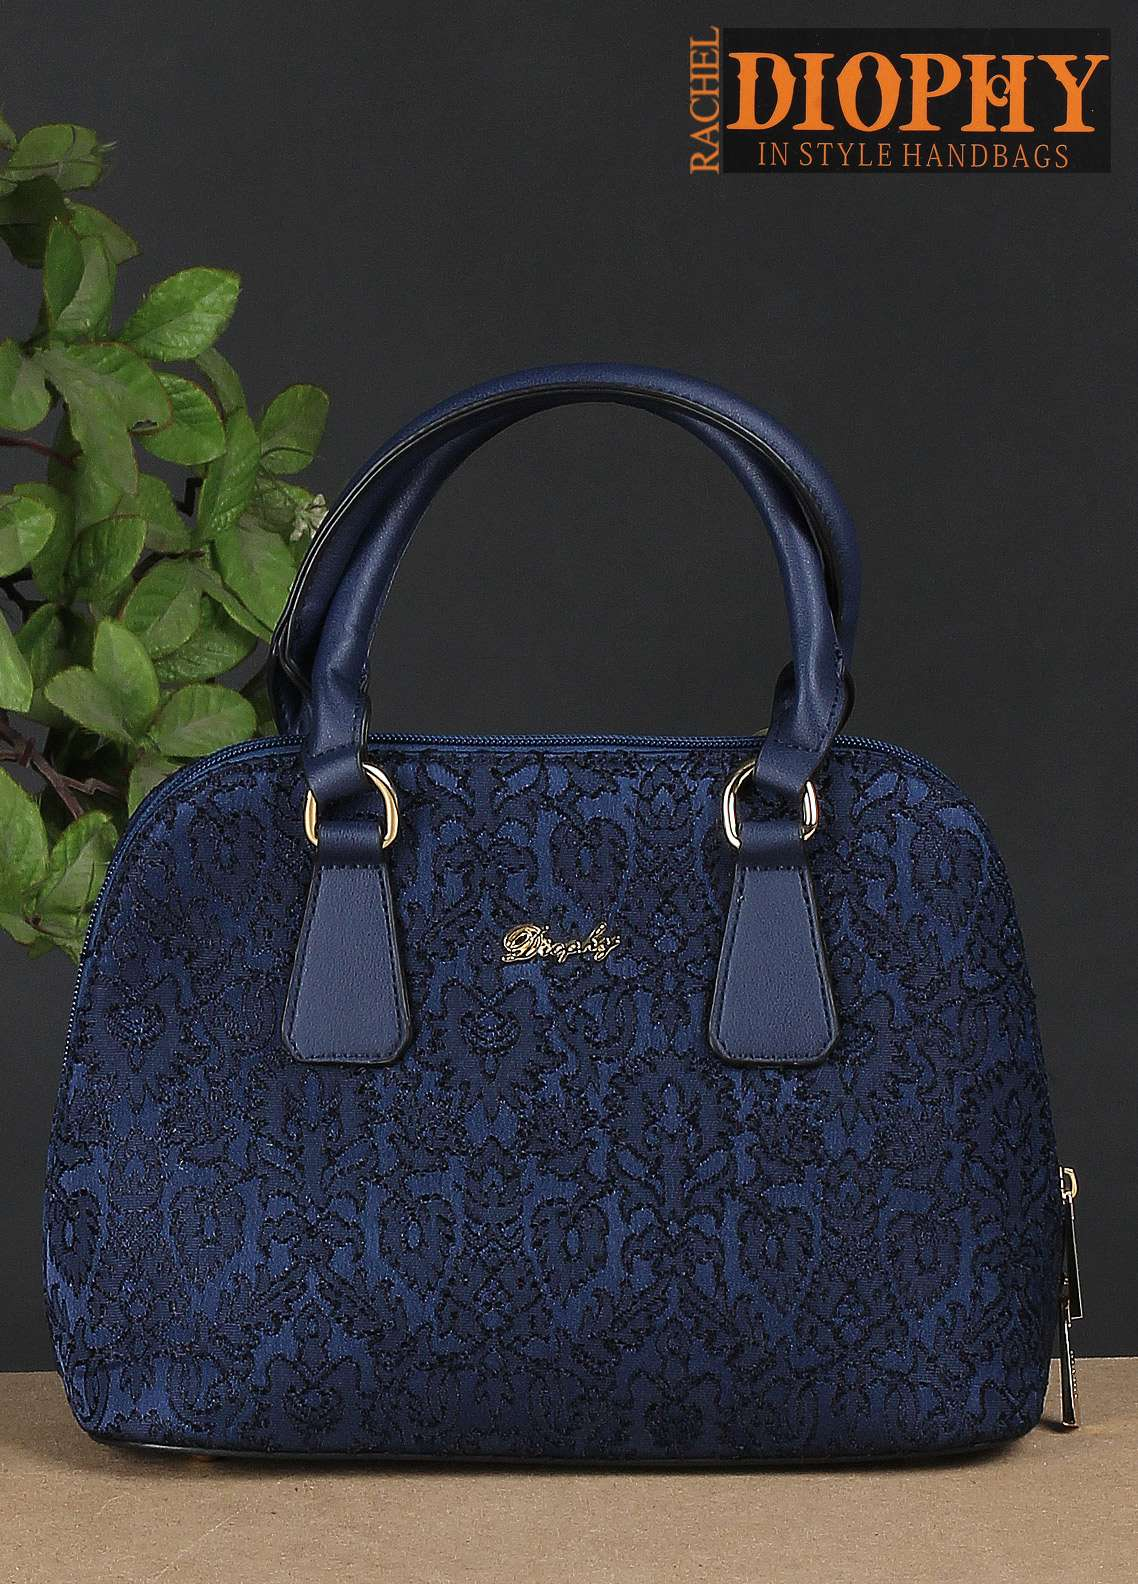 Rachel Diophy PU Leather Satchels Handbags for Women - Blue with Embroidered Textured